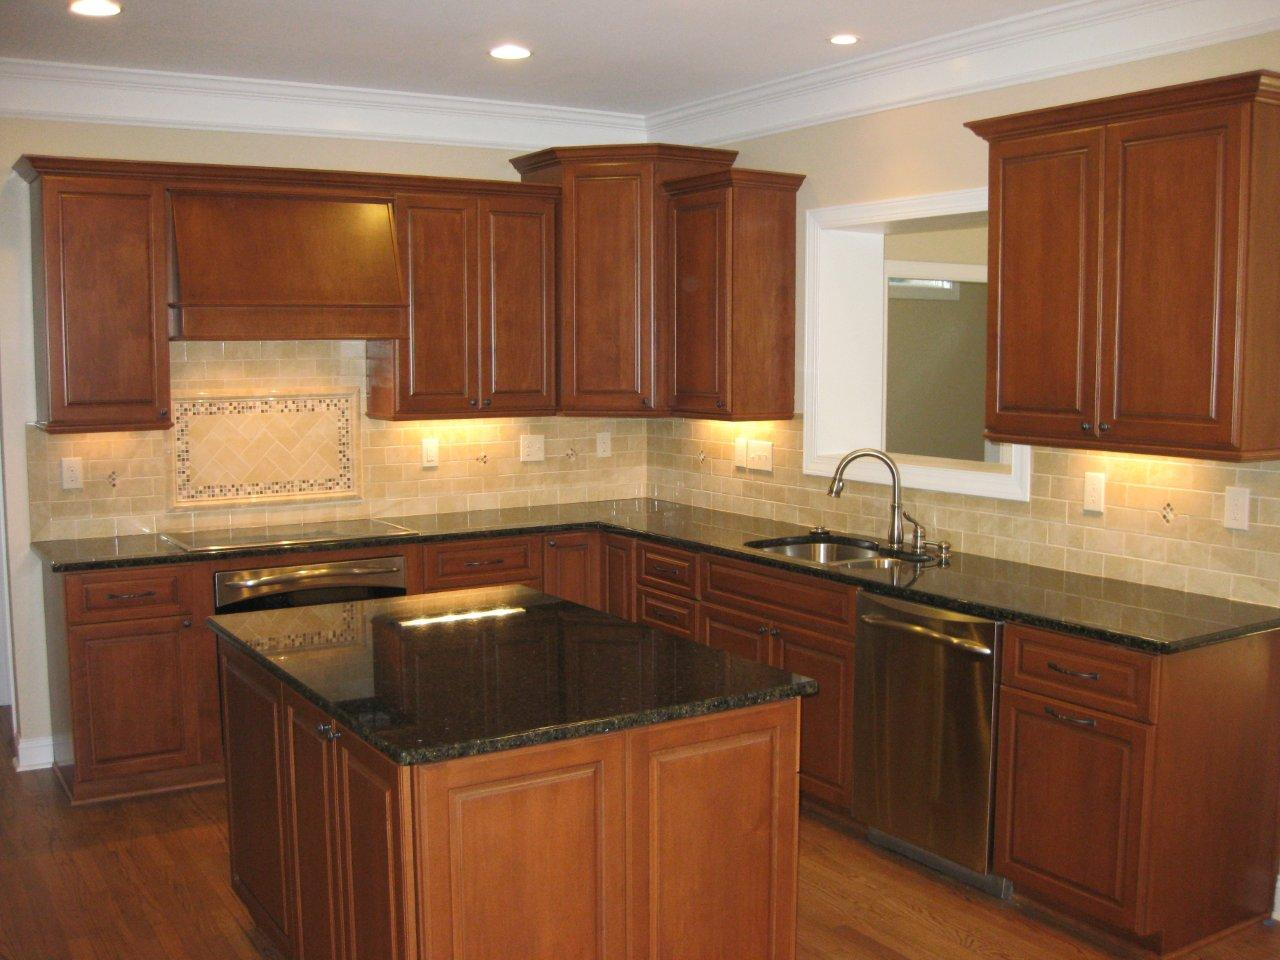 How much does a kitchen remodel cost in charlotte nc distinctive design build remodel How much do kitchen design services cost